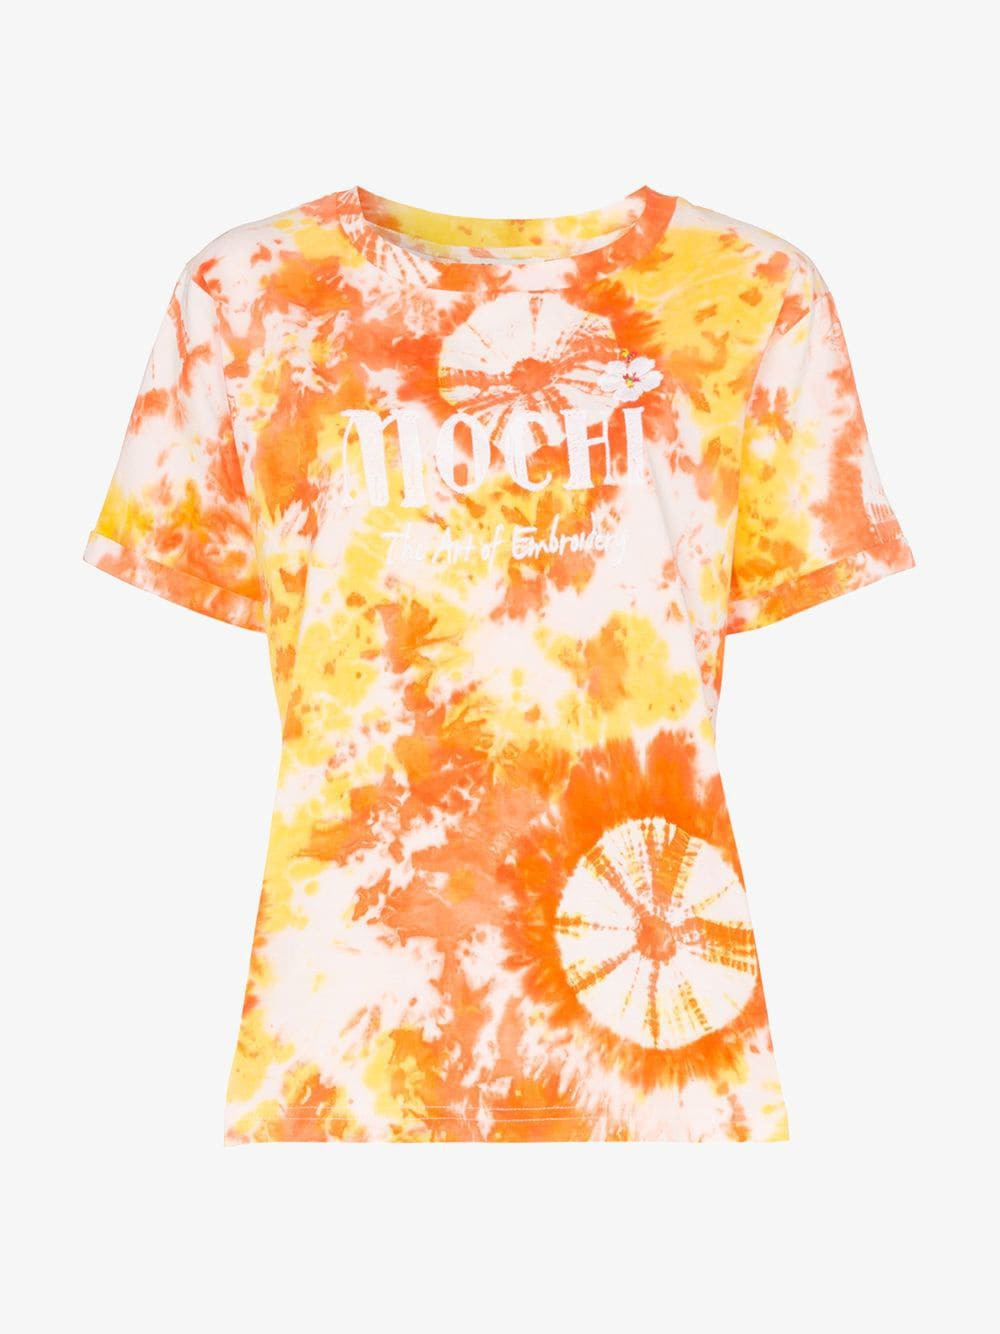 All Things Mochi logo embroidered tie-dye cotton T-shirt in orange